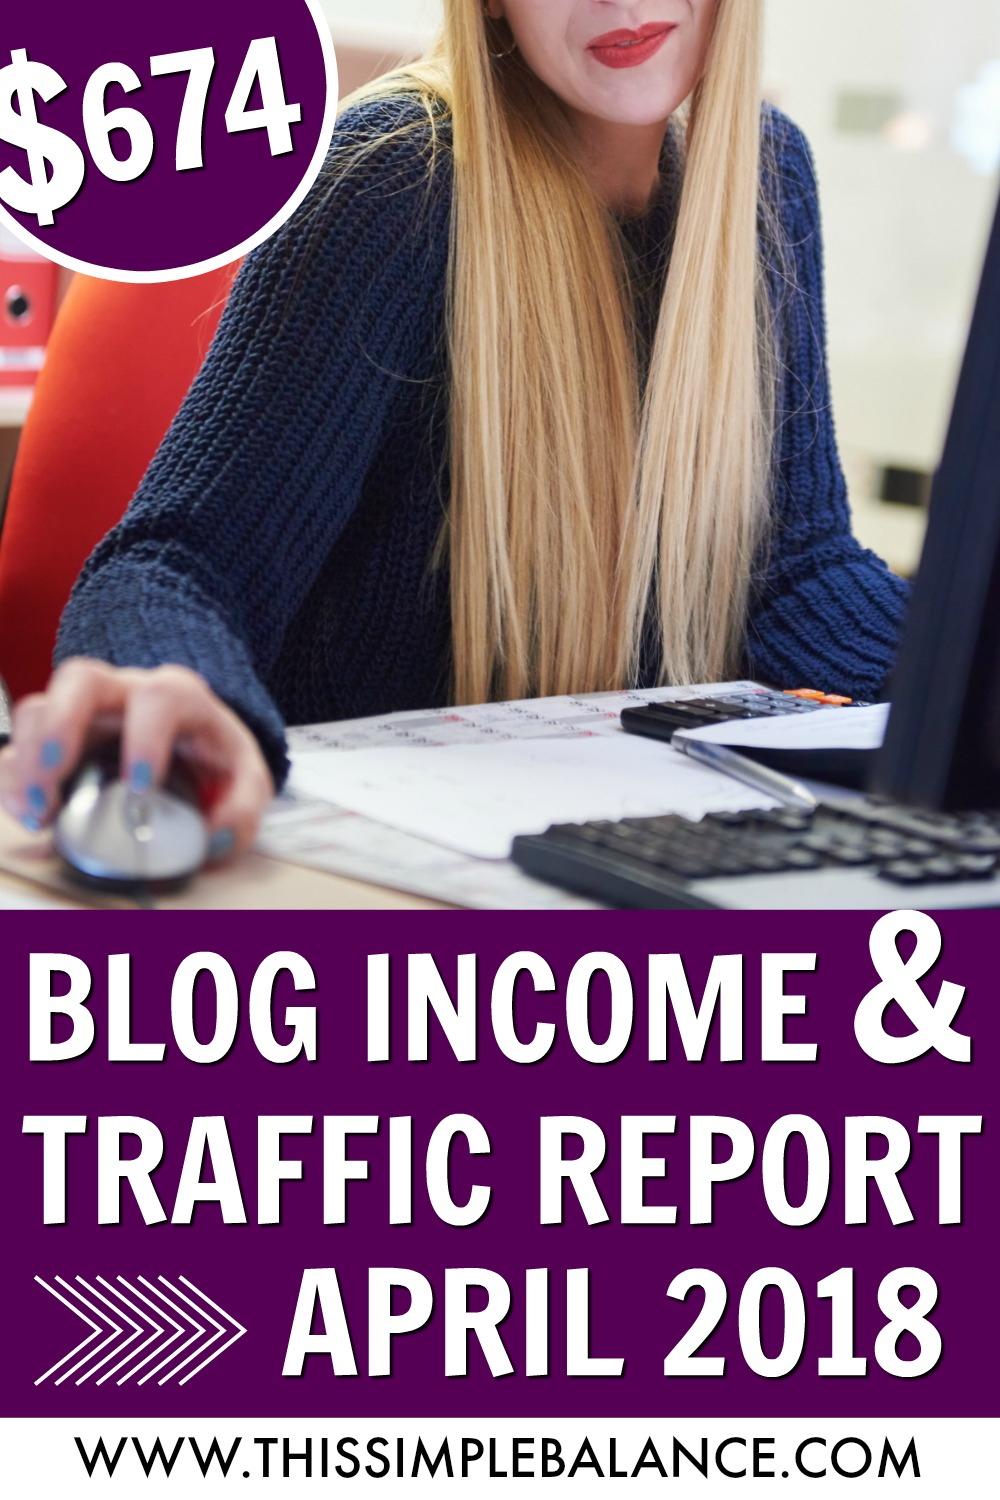 Blog Income and Traffic Report from a Small Blogger: April 2018 earnings, blogging tips and resources I've found useful to earn $674 this past month! #blogincomereport #bloggingtips